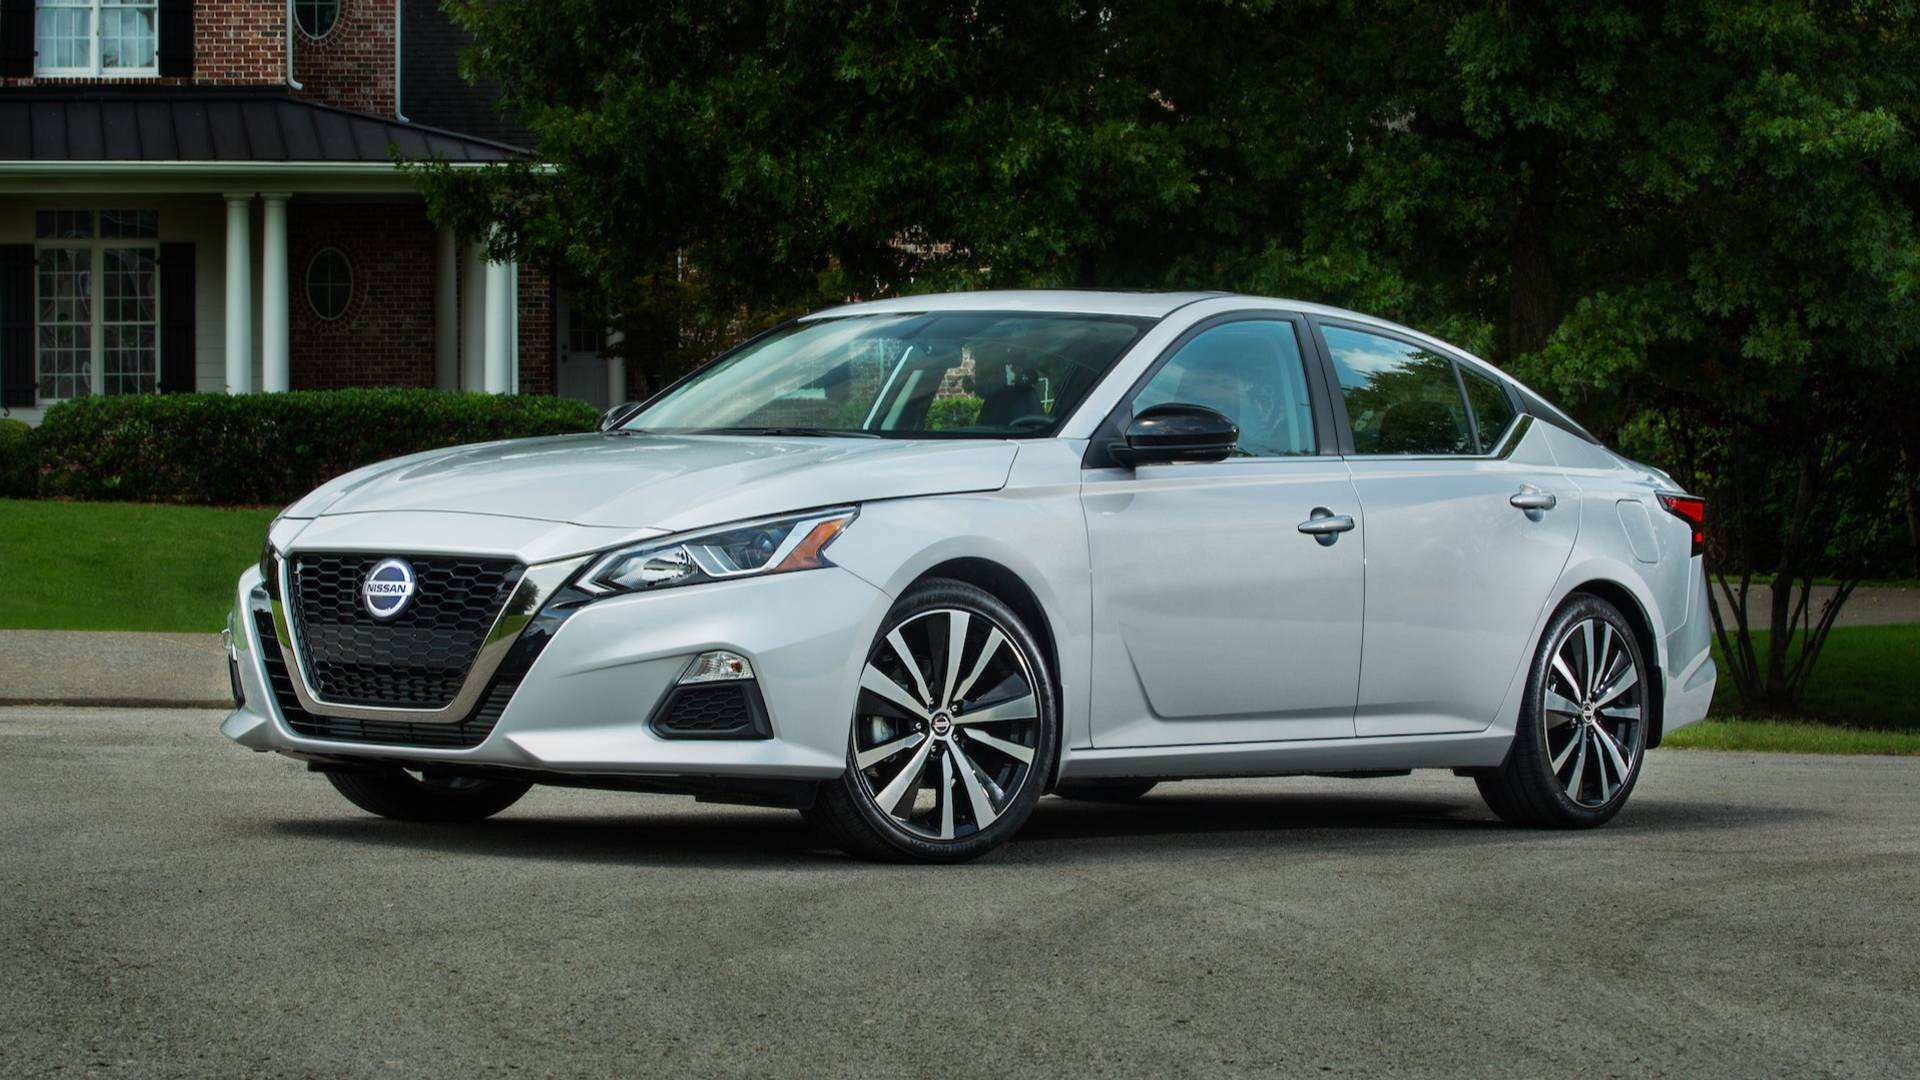 62 The Best 2019 Nissan Maxima Horsepower Prices